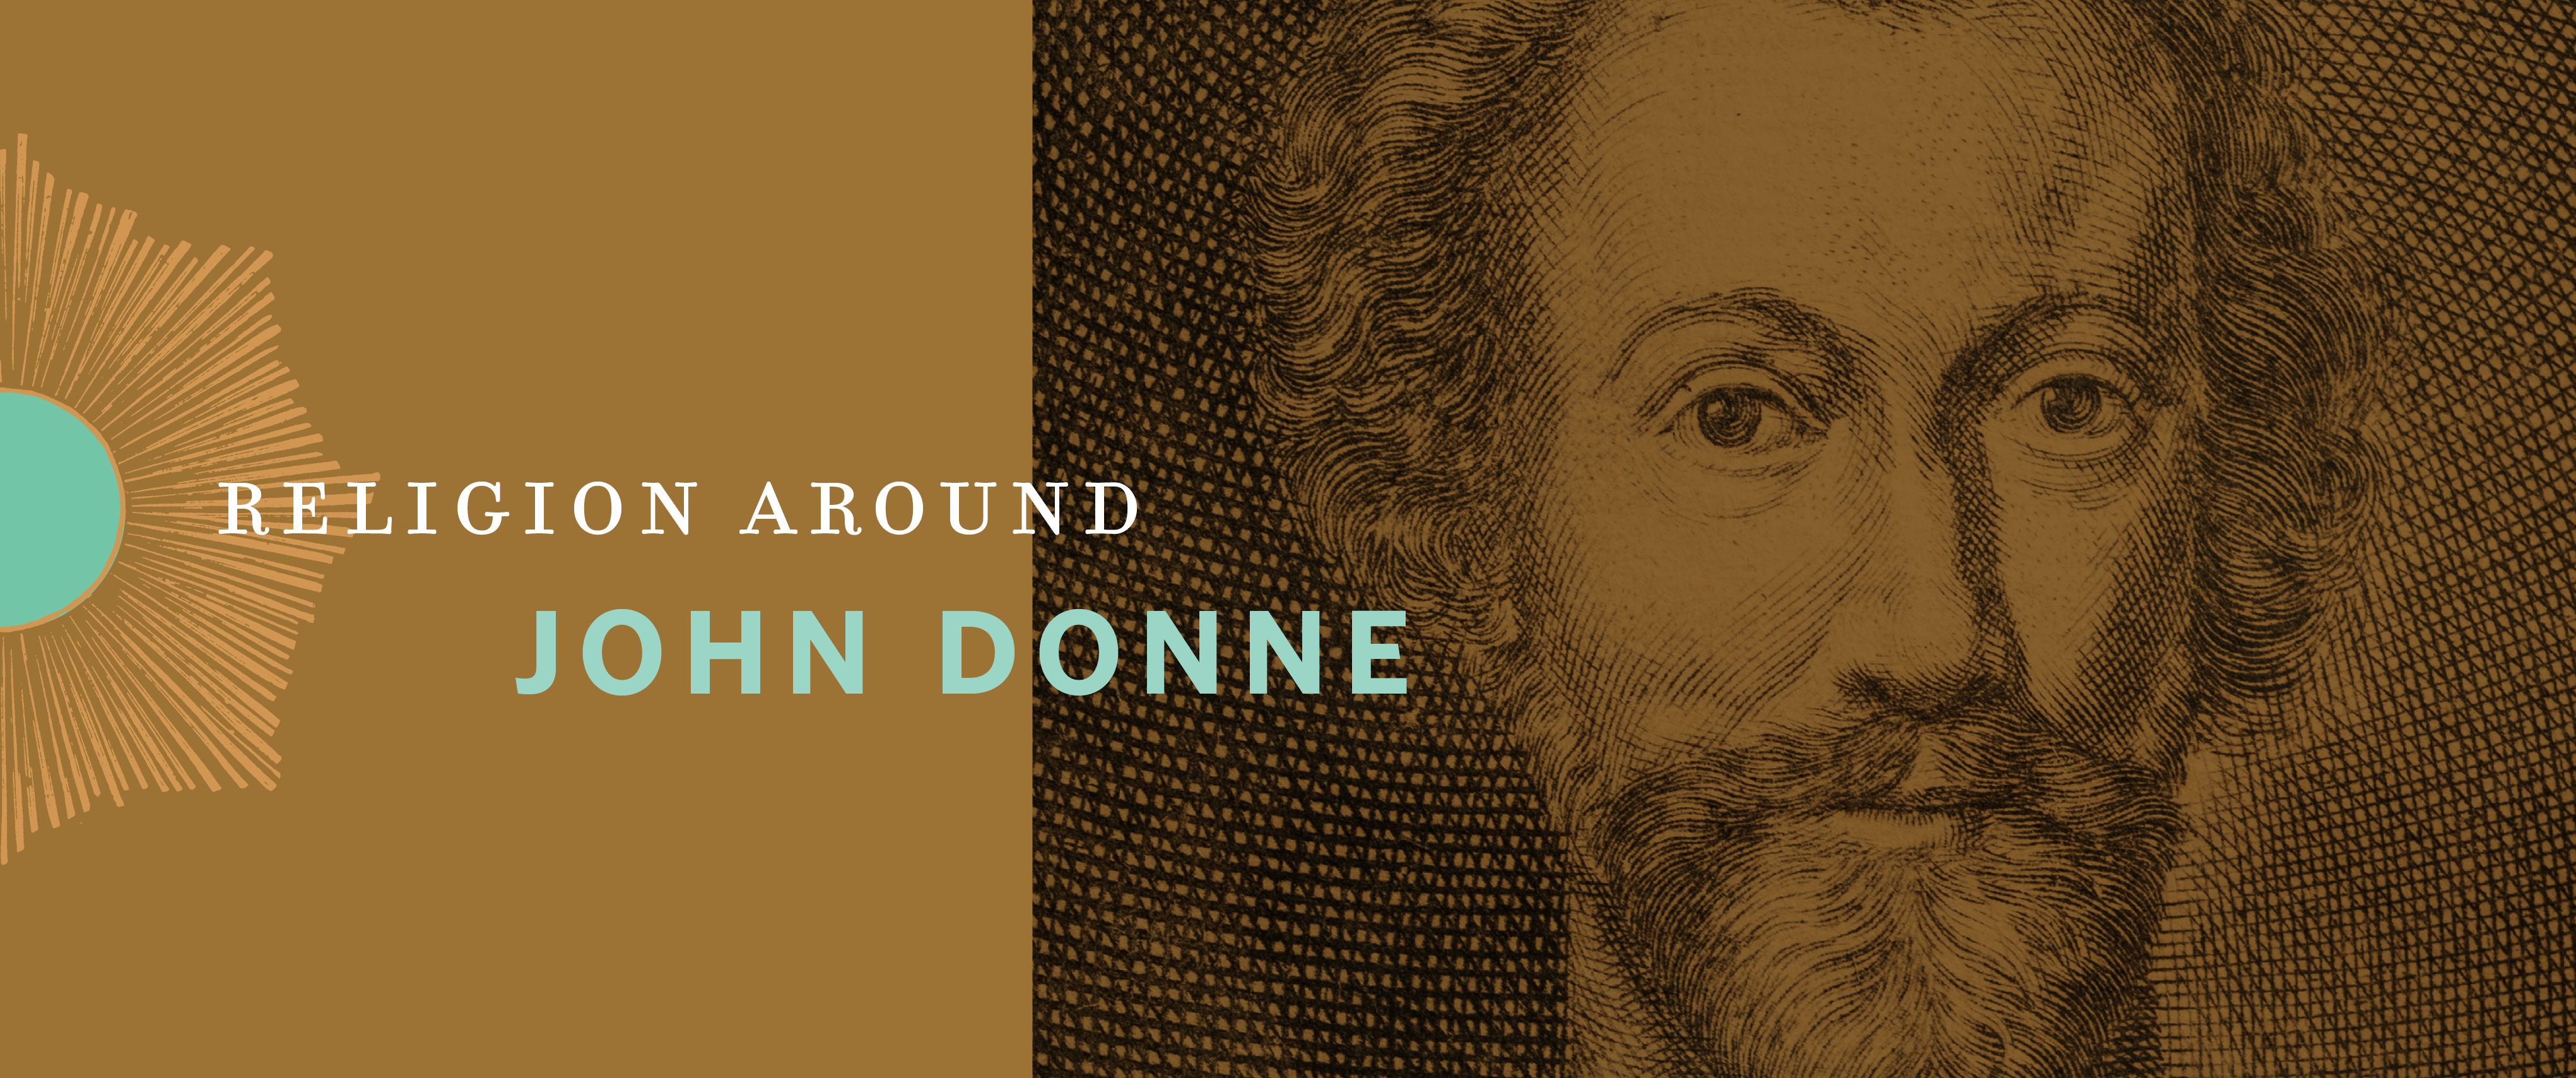 Religion around John Donne